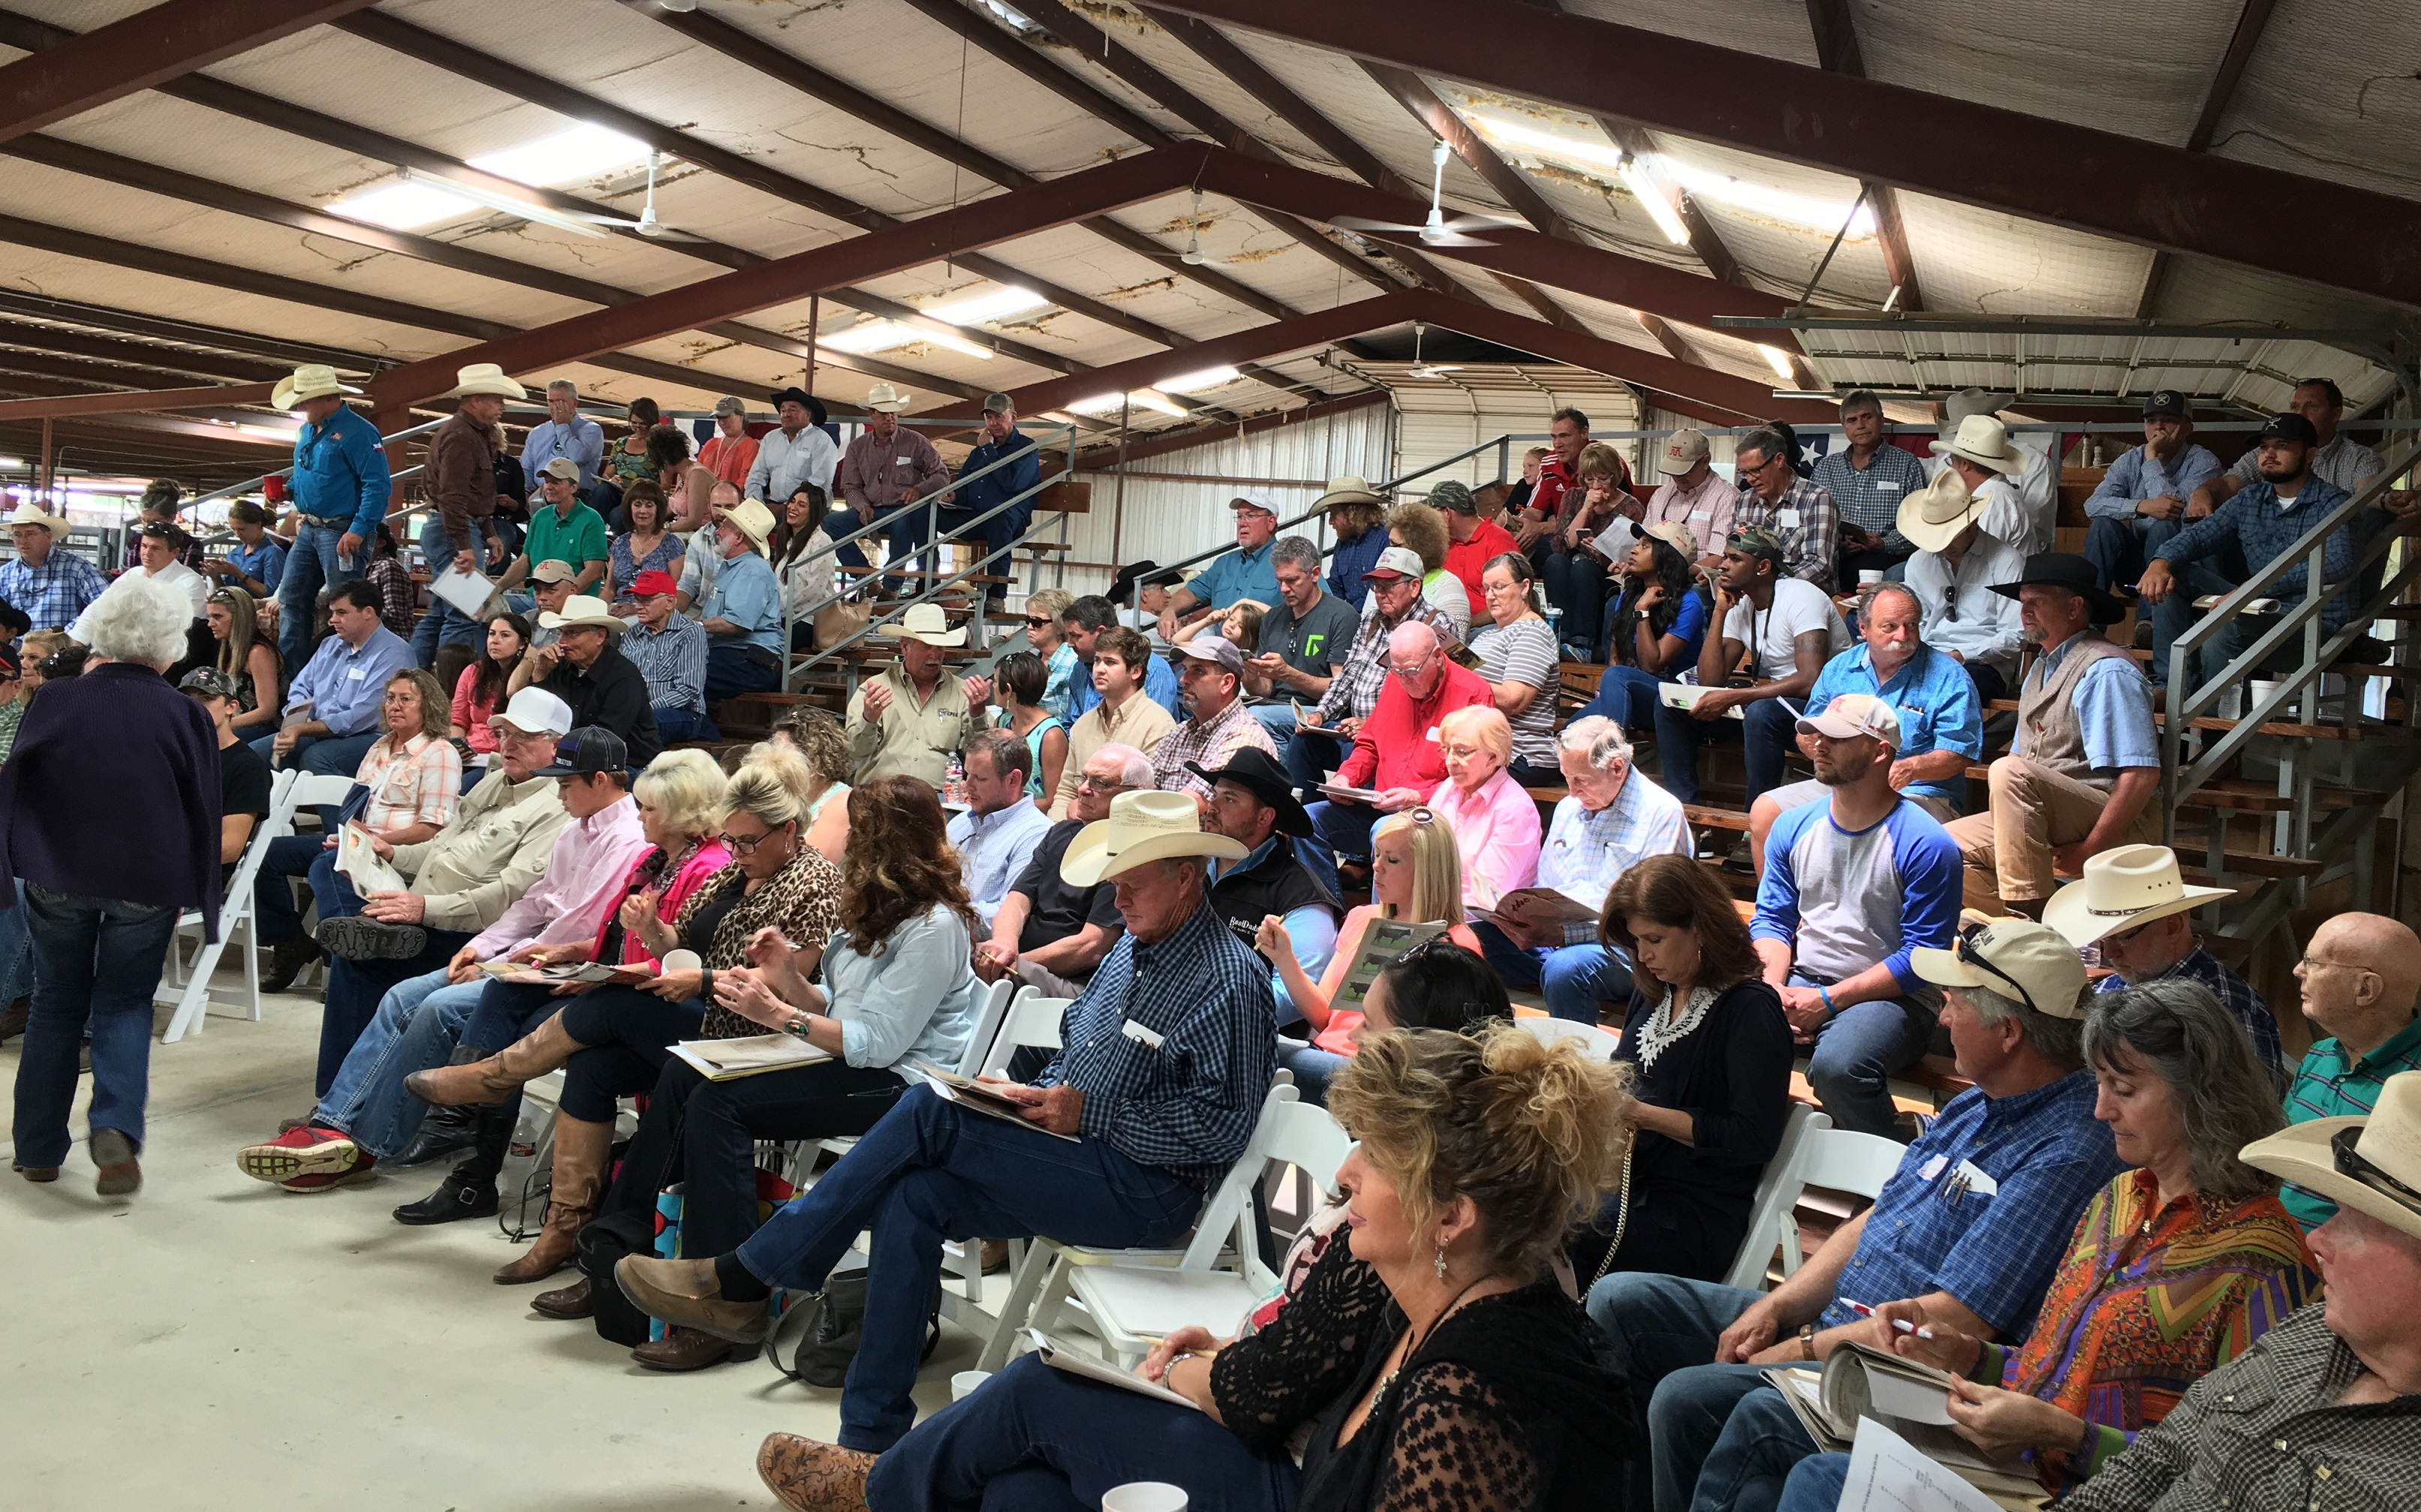 Salado pic crowd1